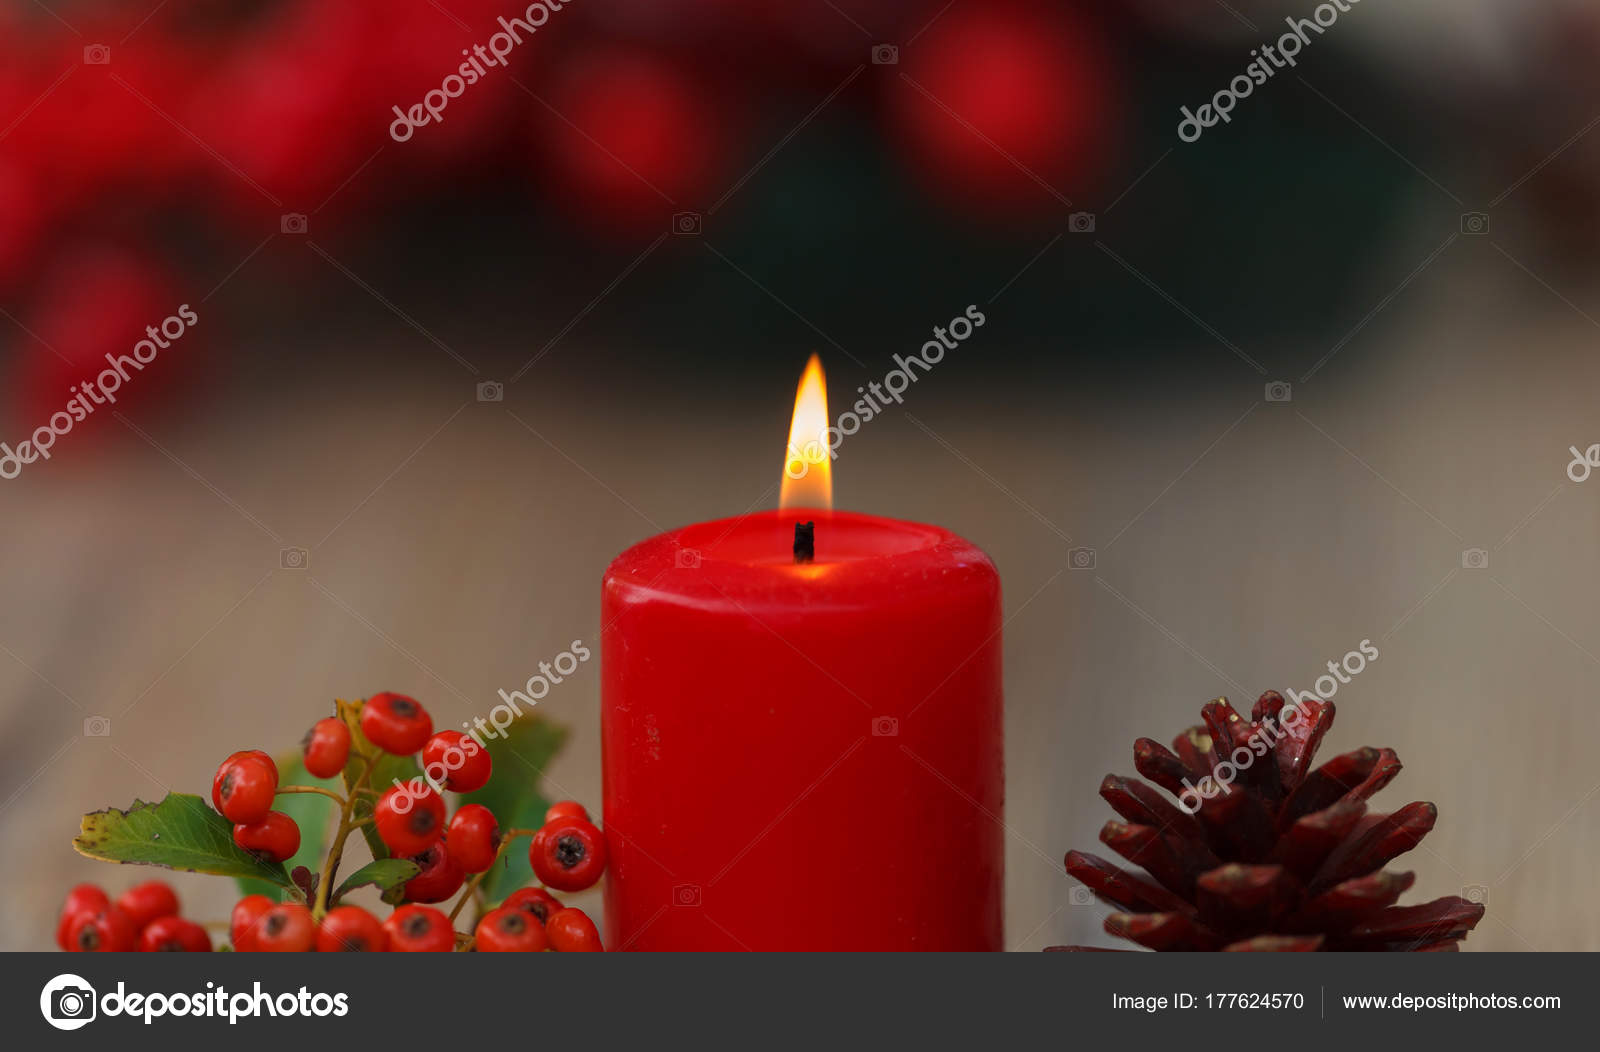 b16d5cd4ab79 Burning Red Christmas Candle Pine Cone Berries Beautiful Holiday ...